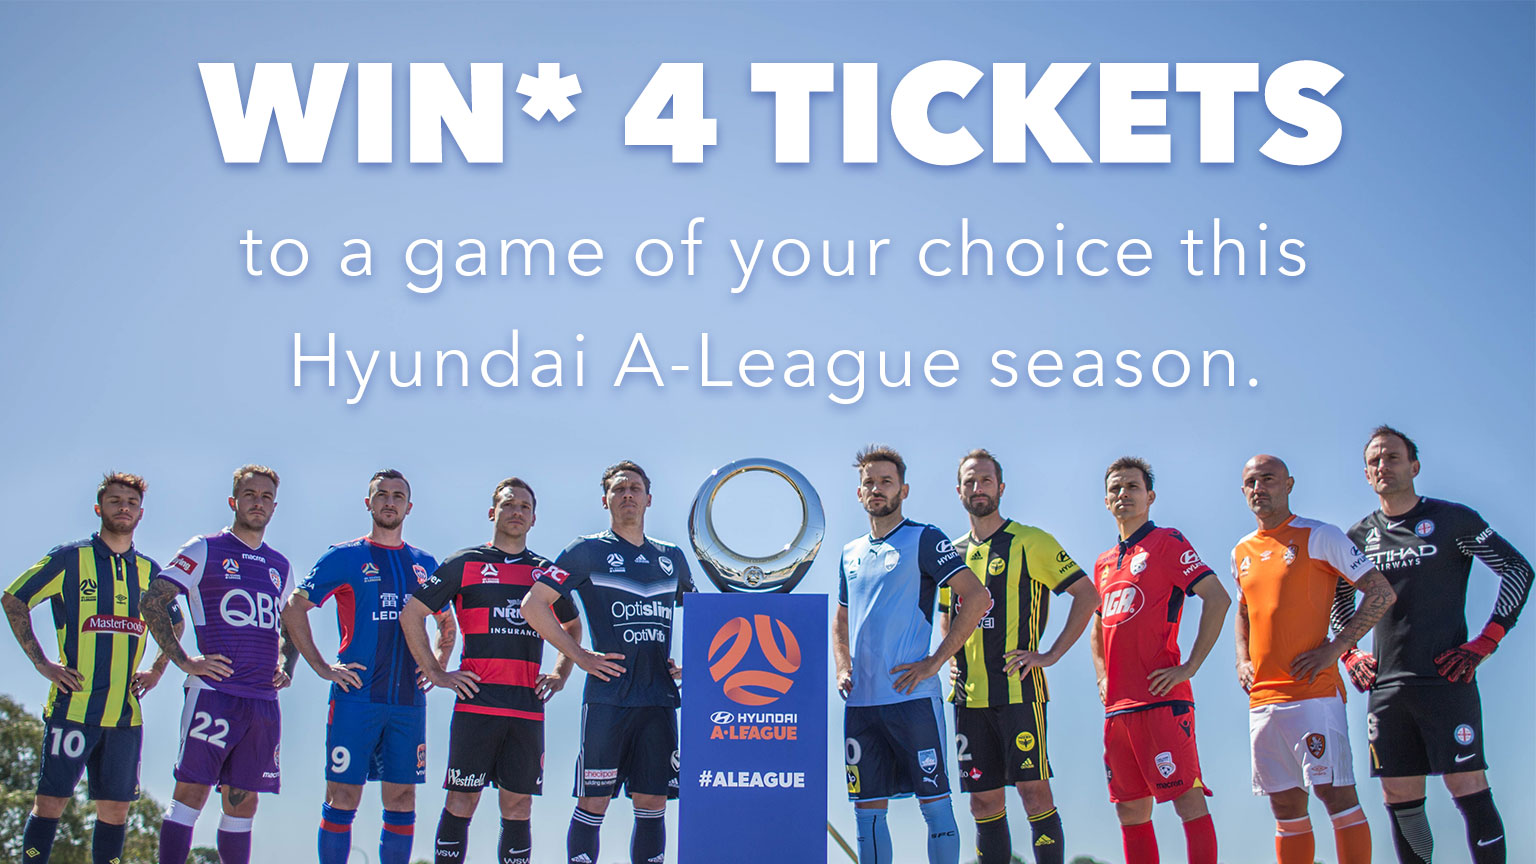 Hyundai A-League Competition